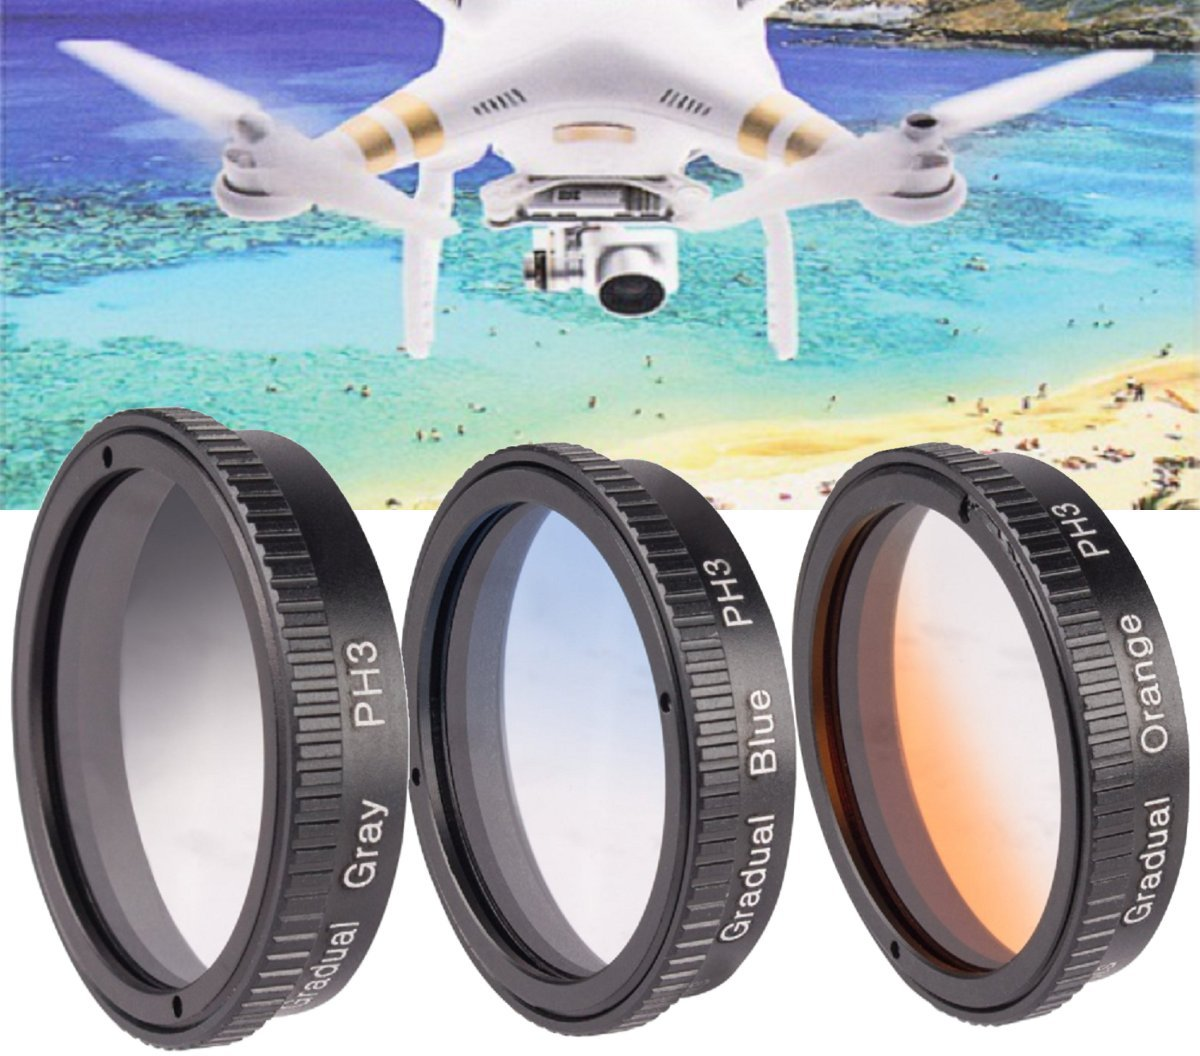 3 Piece Gradual Color Filter Kit for DJI Phantom 3 4K,DJI Phantom 3 Standard, DJI Phantom 3 Advanced, DJI Phantom 3 Pro, DJI Phantom 4 Quad-copters